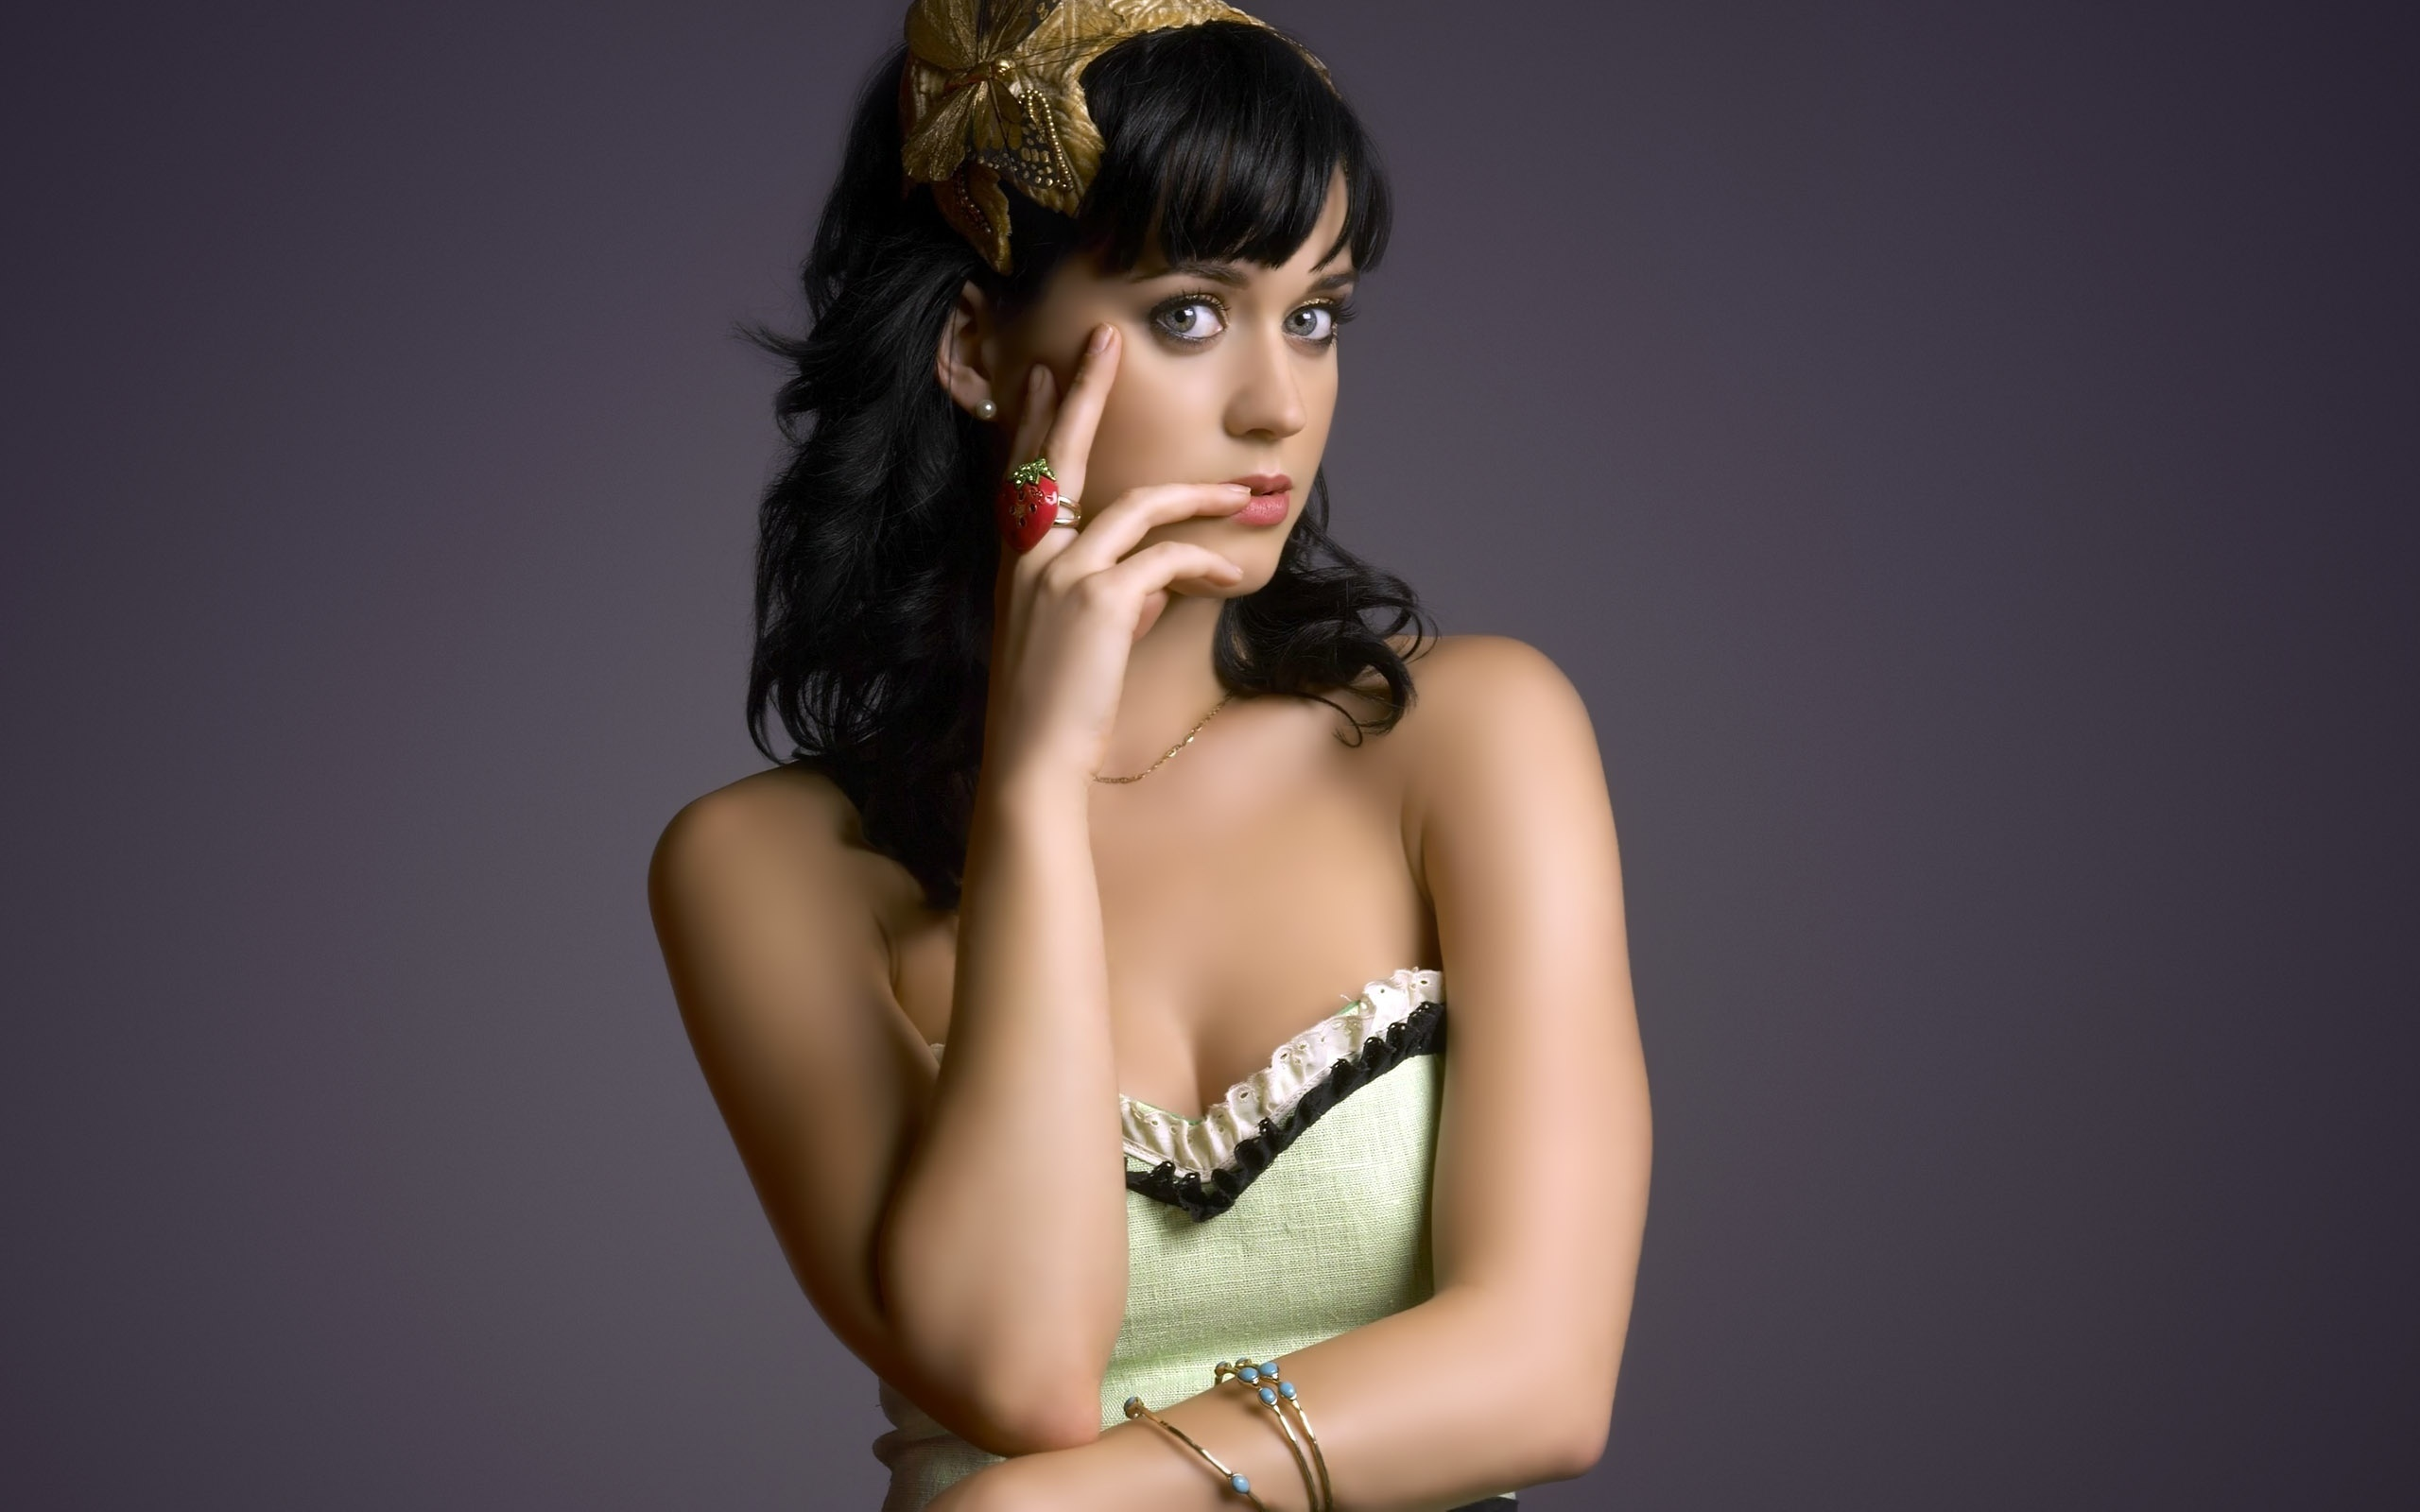 katy perry hd wallpaper | background image | 2560x1600 | id:115480